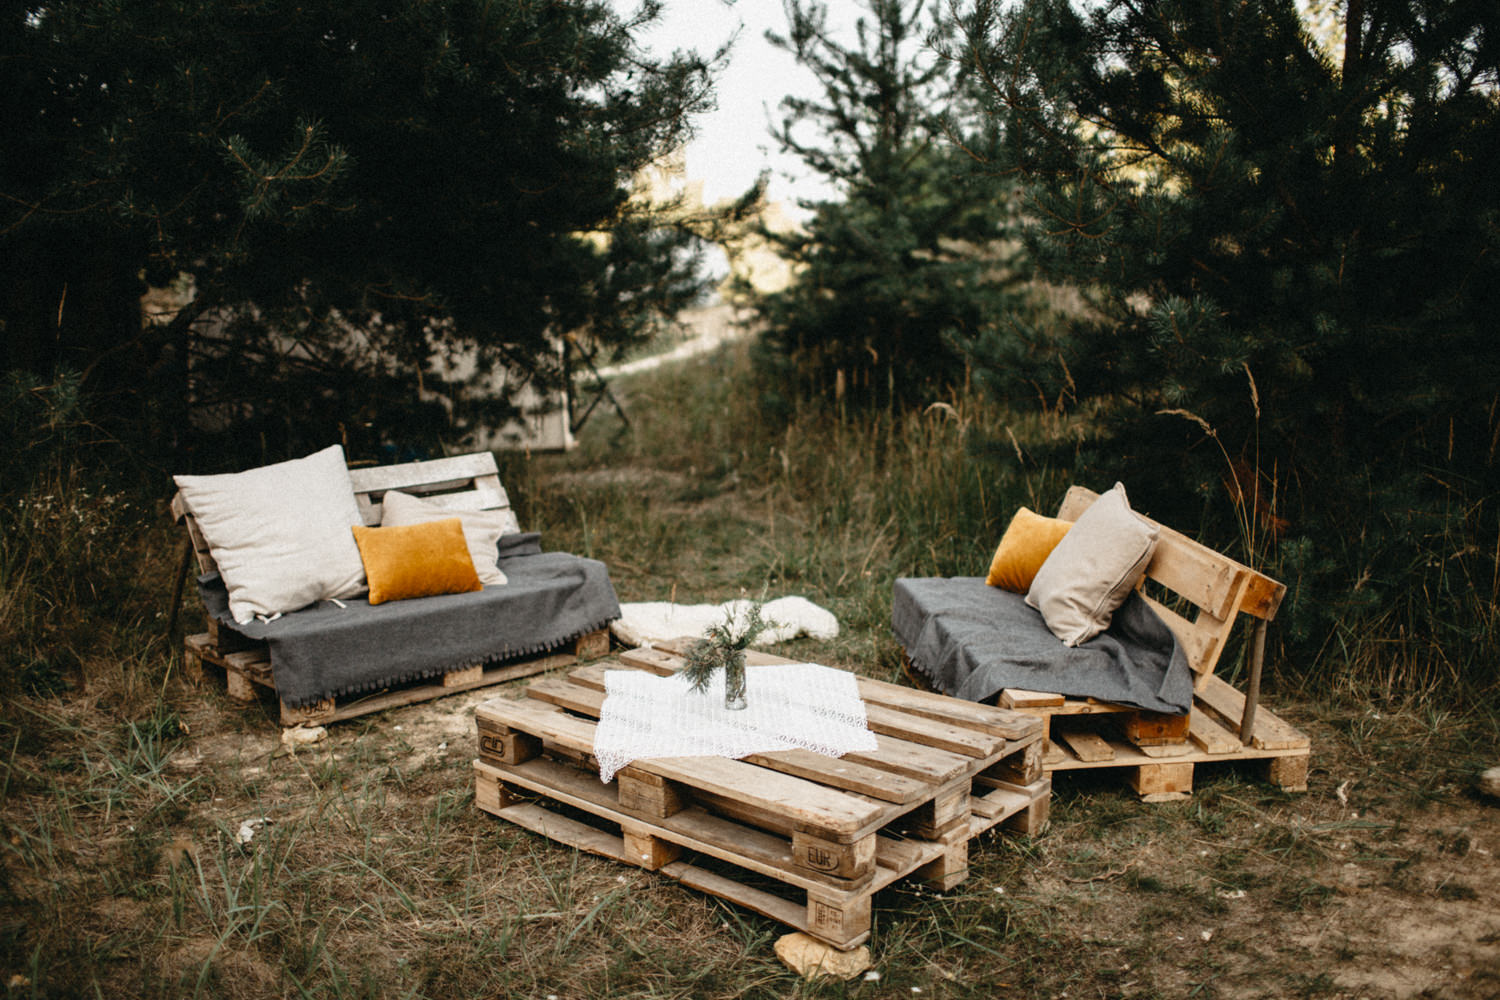 outdoor relax zone for the wedding guests